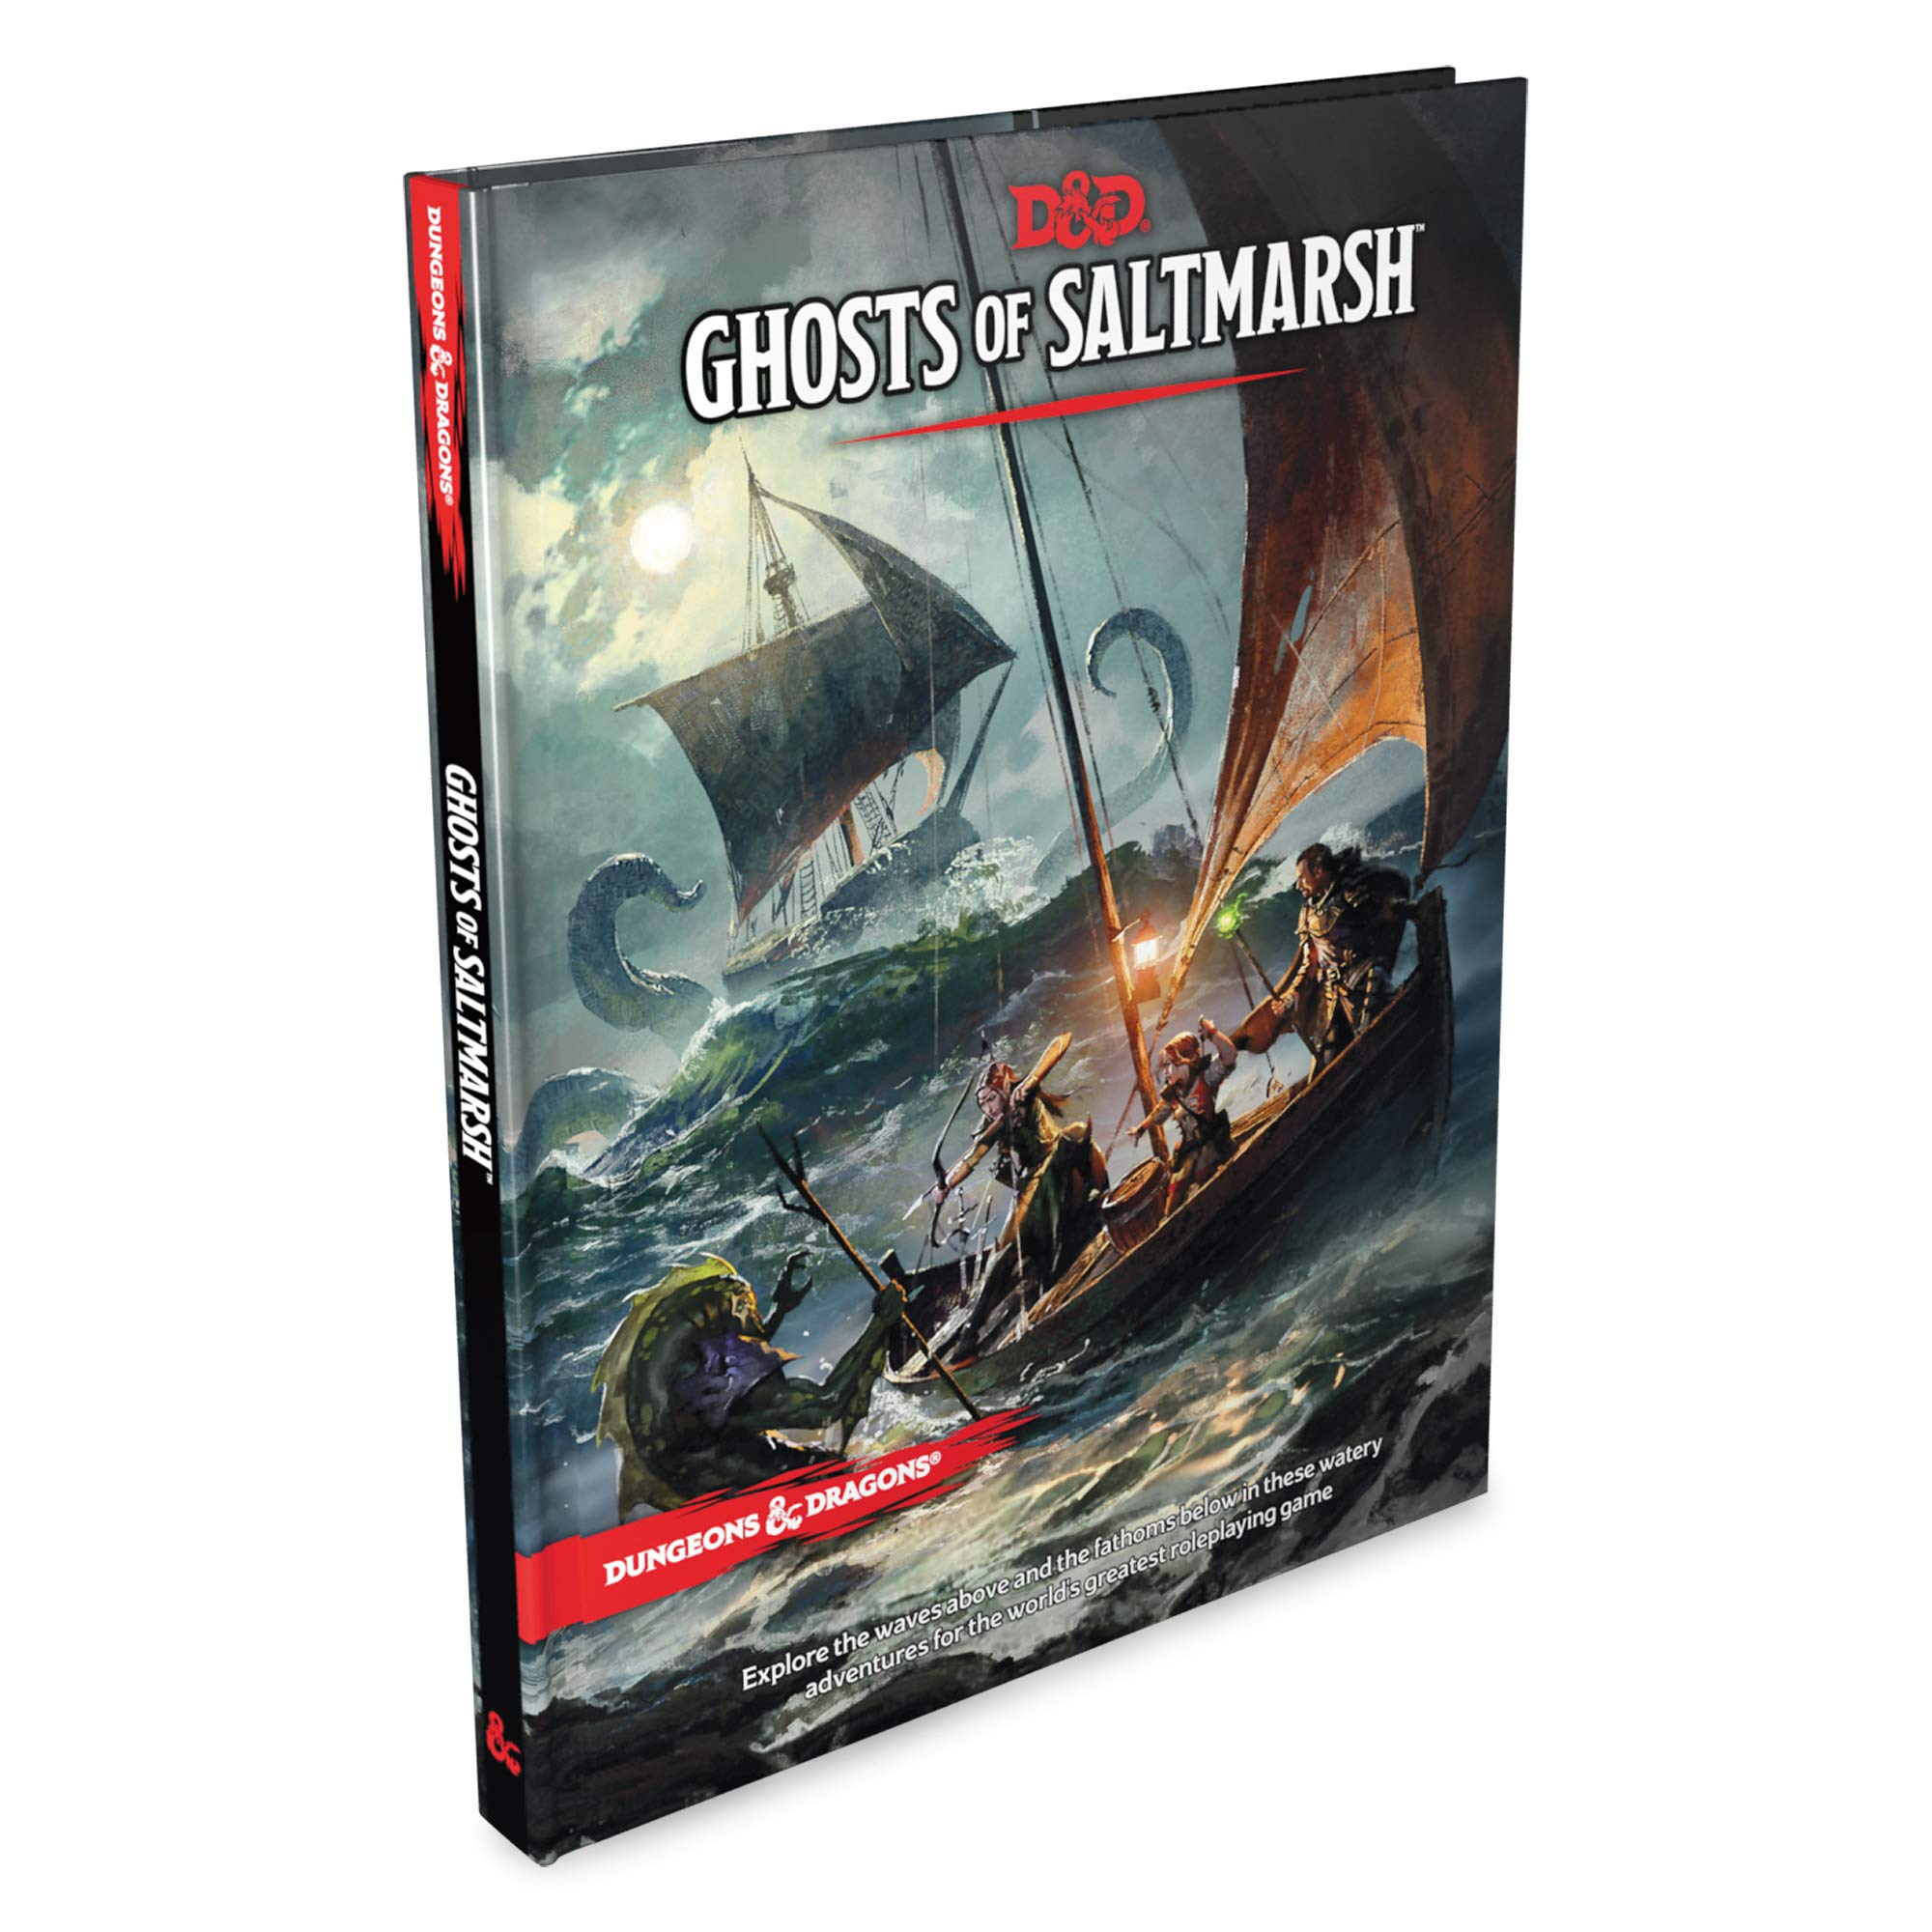 D&D RPG: Ghosts of Saltmarsh (Dungeons and Dragons RPG)